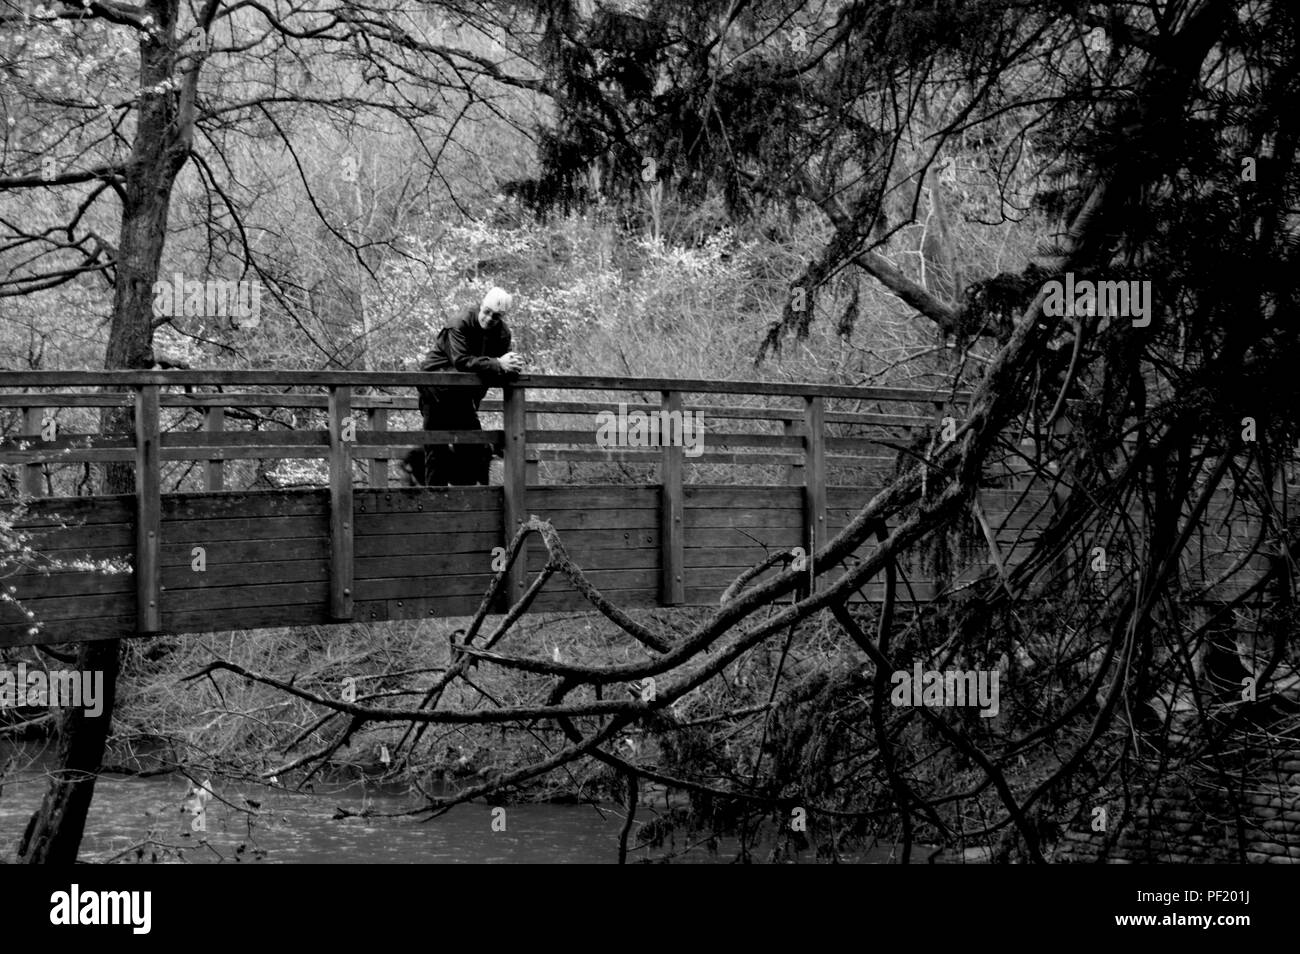 Man on black and white bridge in forest Stock Photo